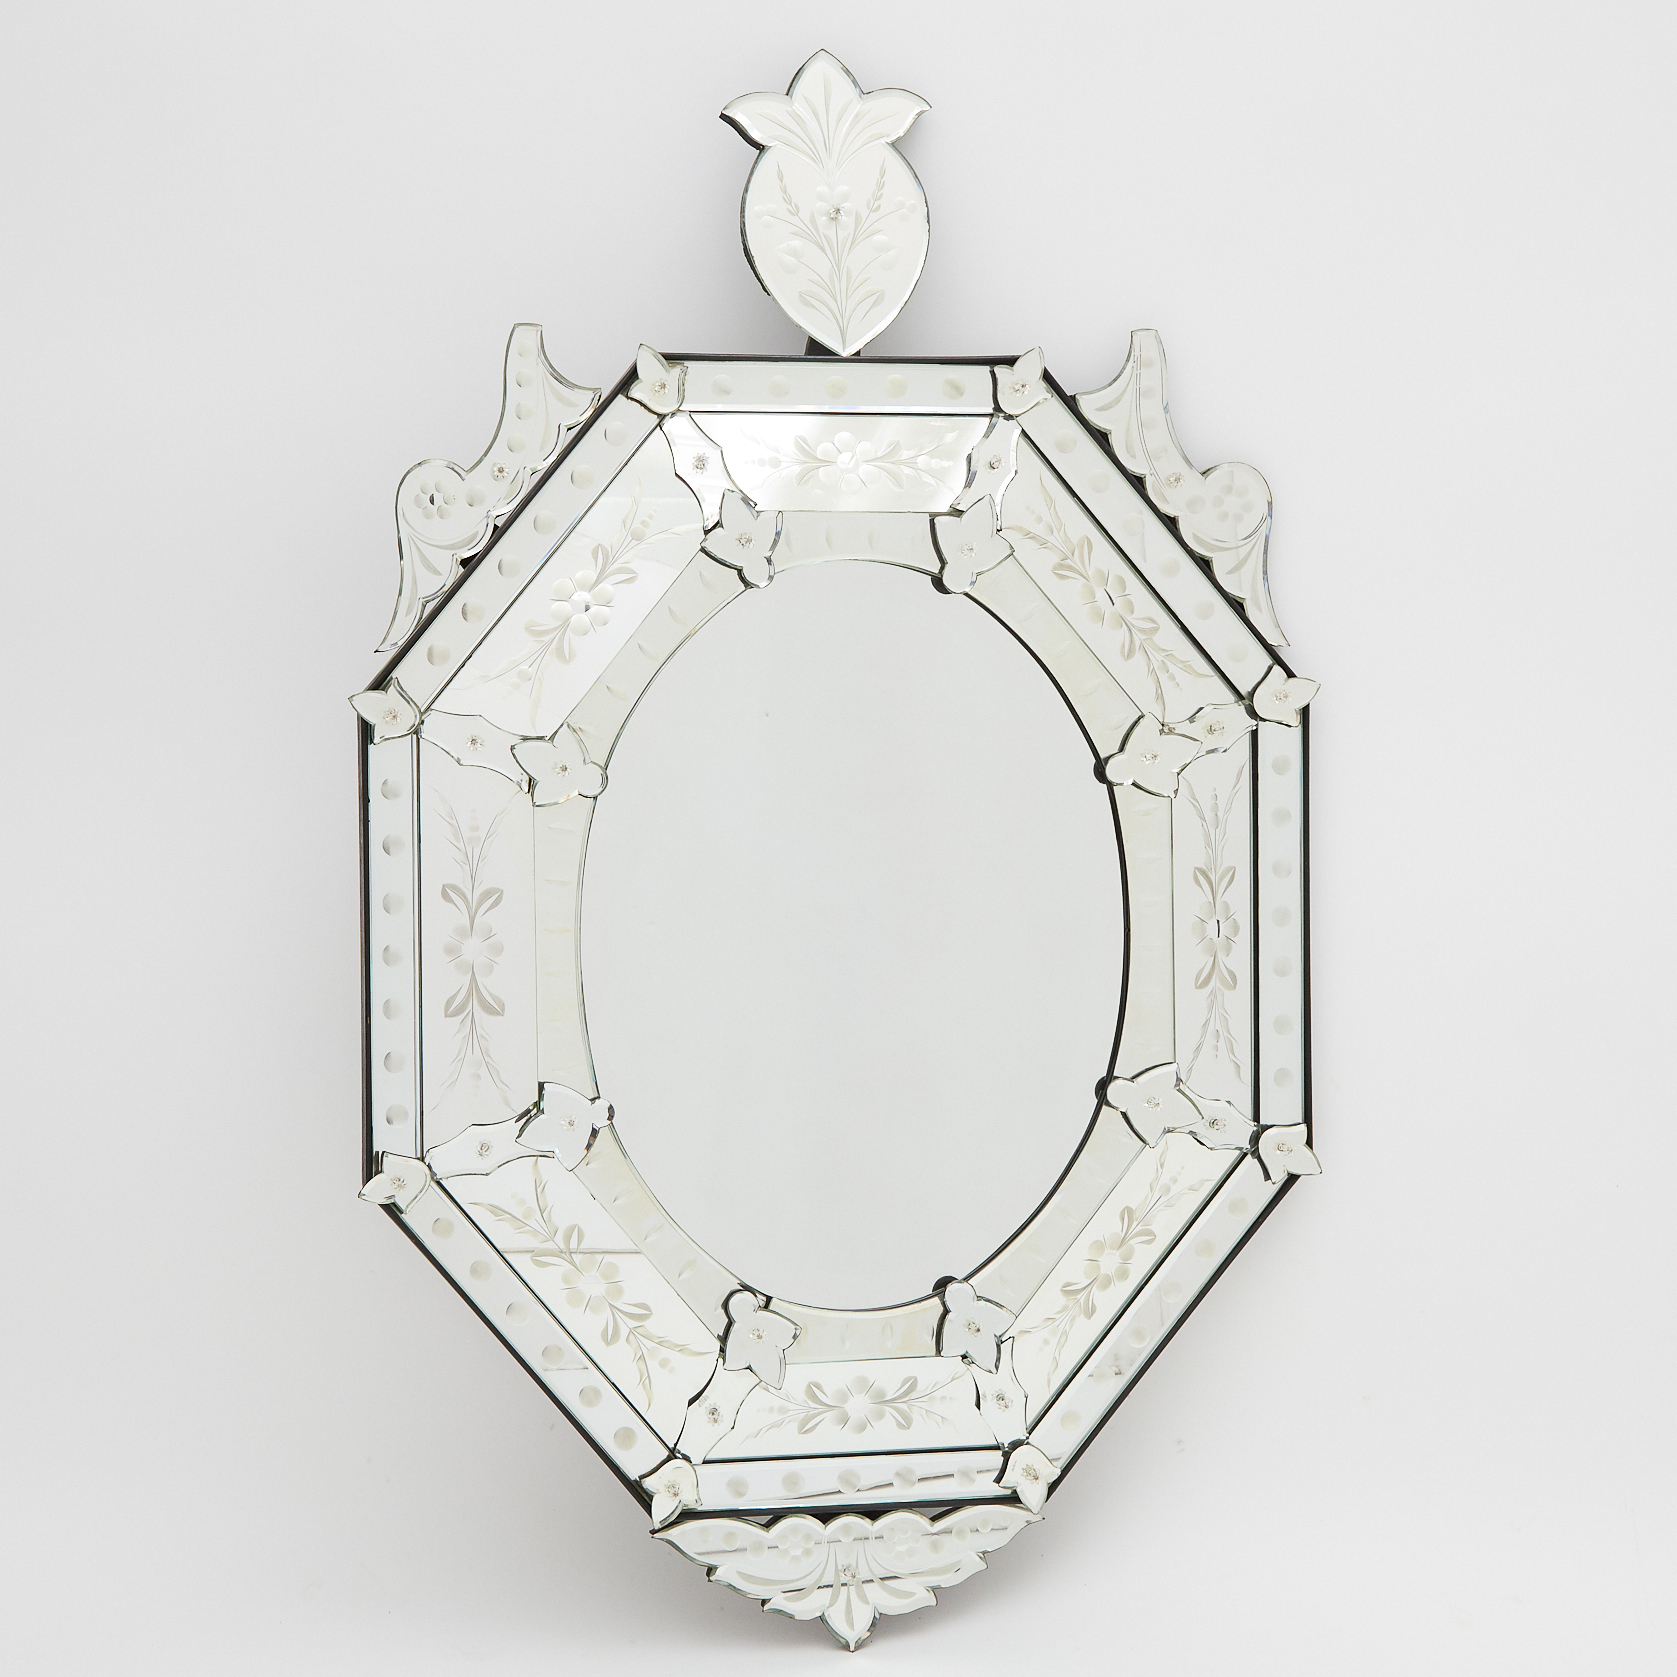 Venetian Etched Glass Mirror-Framed-Mirror, 20th century